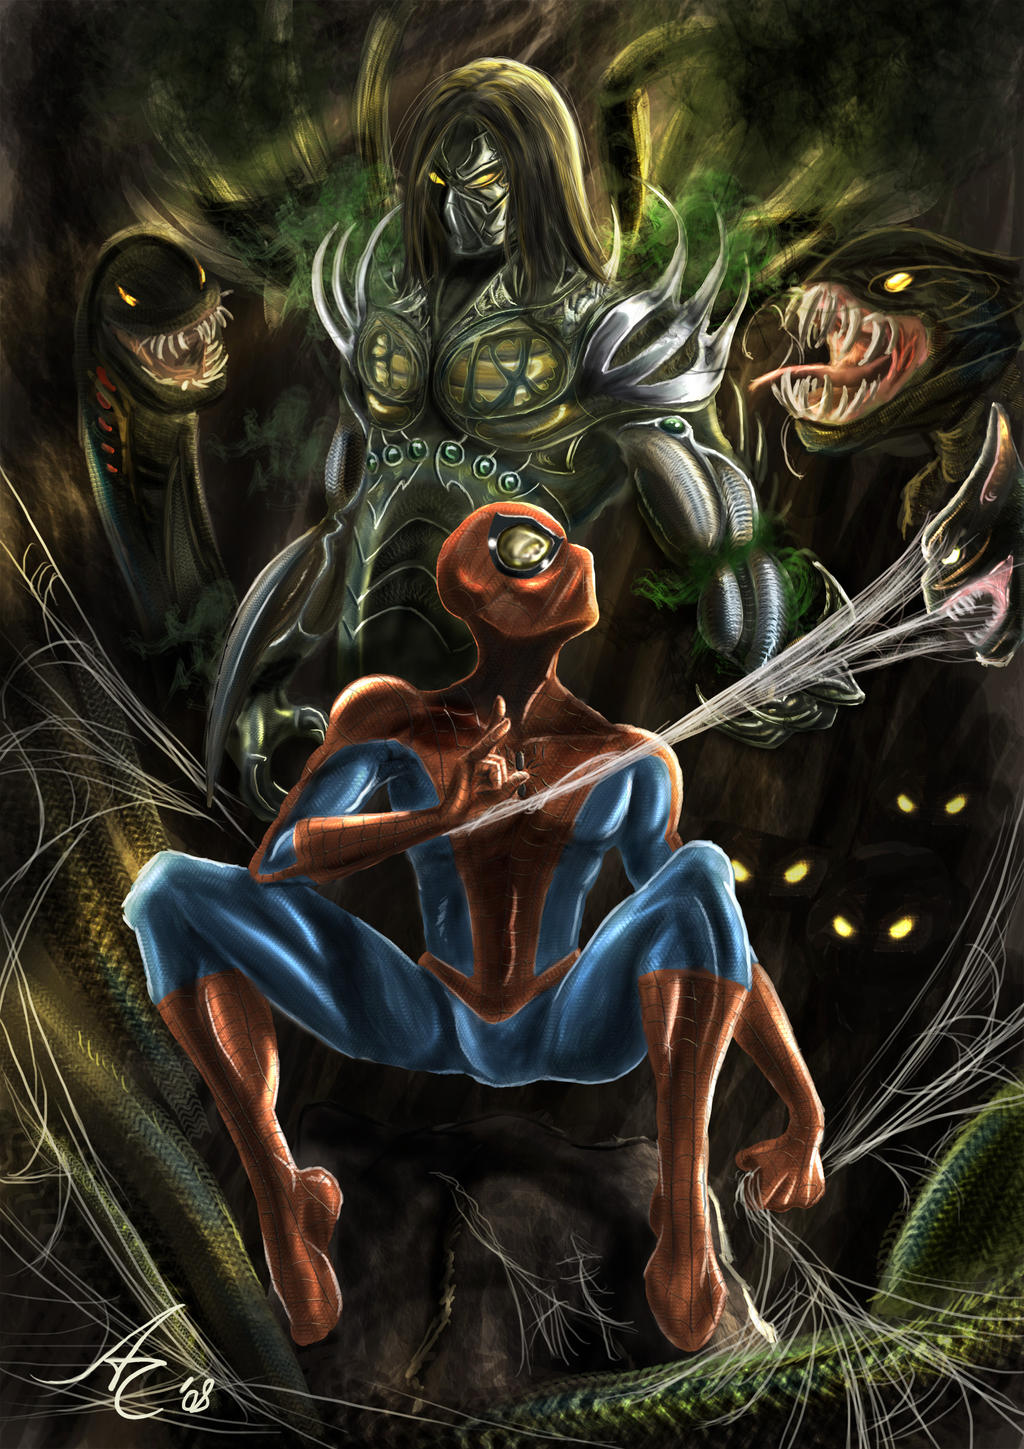 The Darkness and Spider-man by alecyl